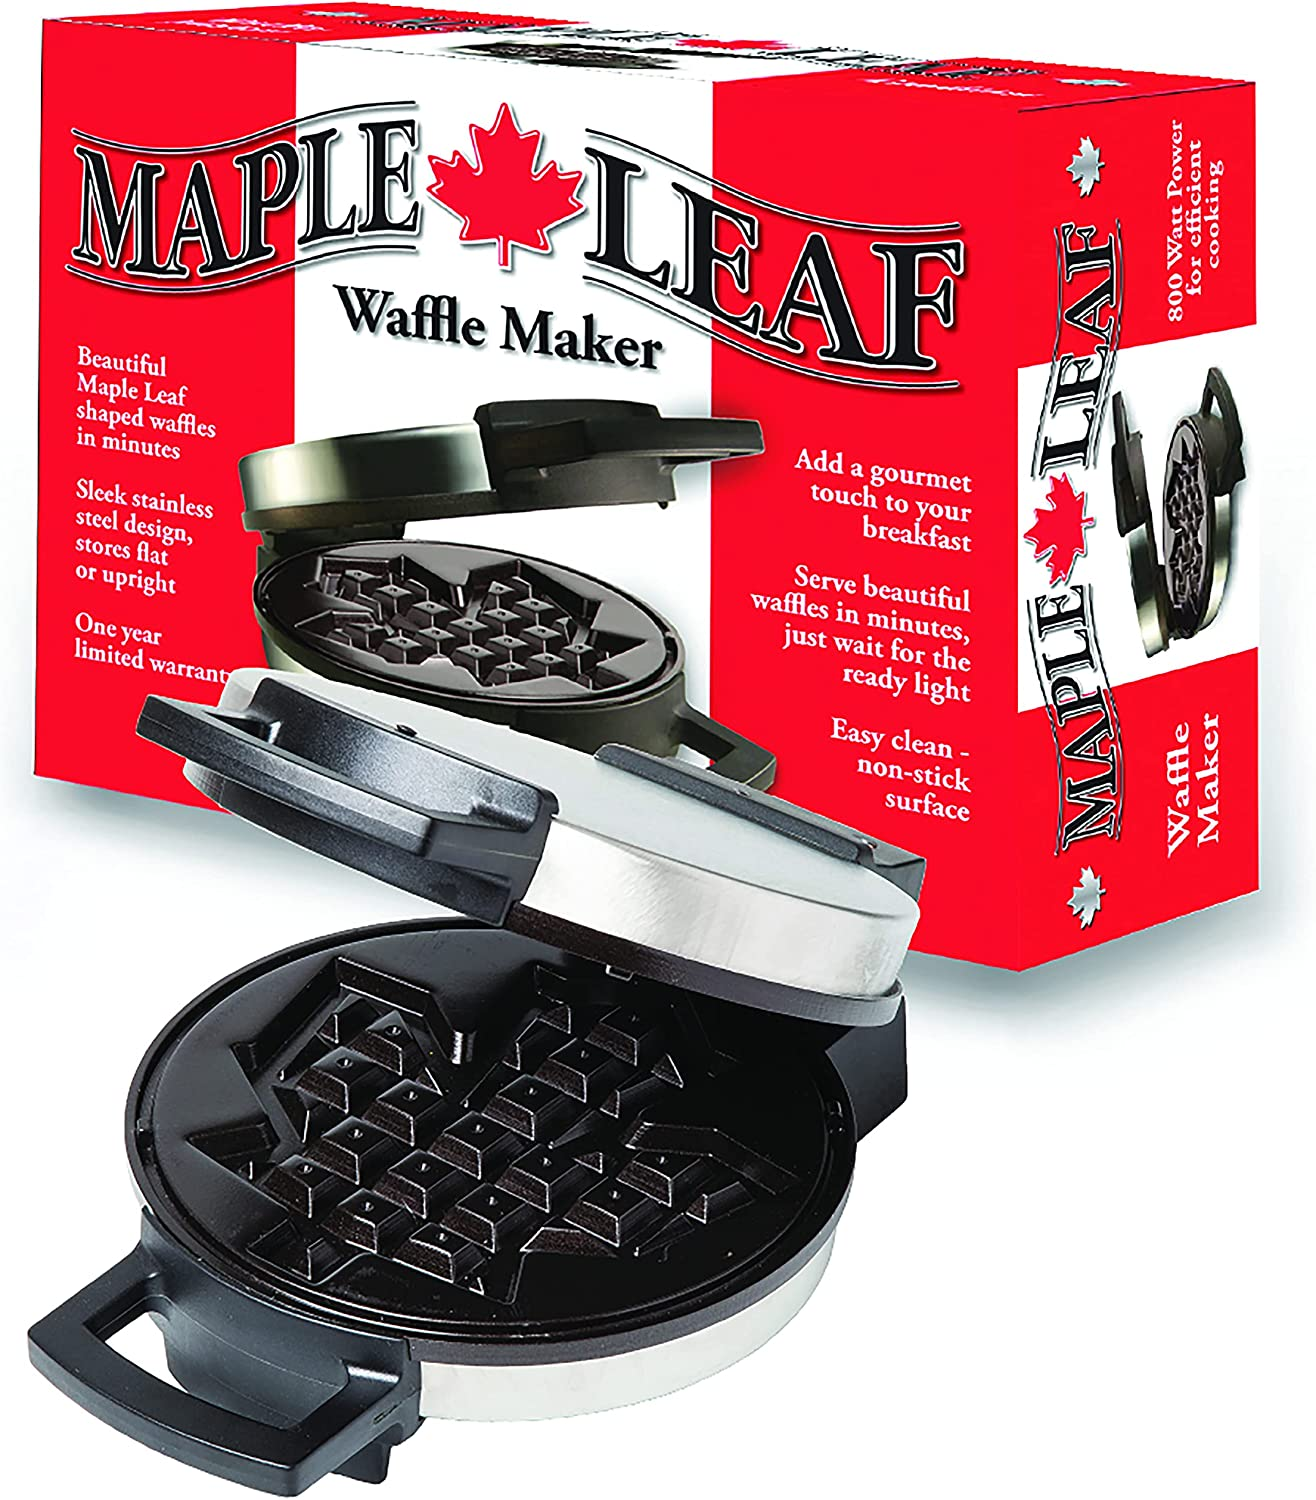 Canadian Maple Leaf Shaped Belgian Waffle Maker High Quality Non Stick Waffle Iron Works Perfectly For Chaffles Gluten Free Or Paleo Pancake And Waffle Mix Kitchen Dining